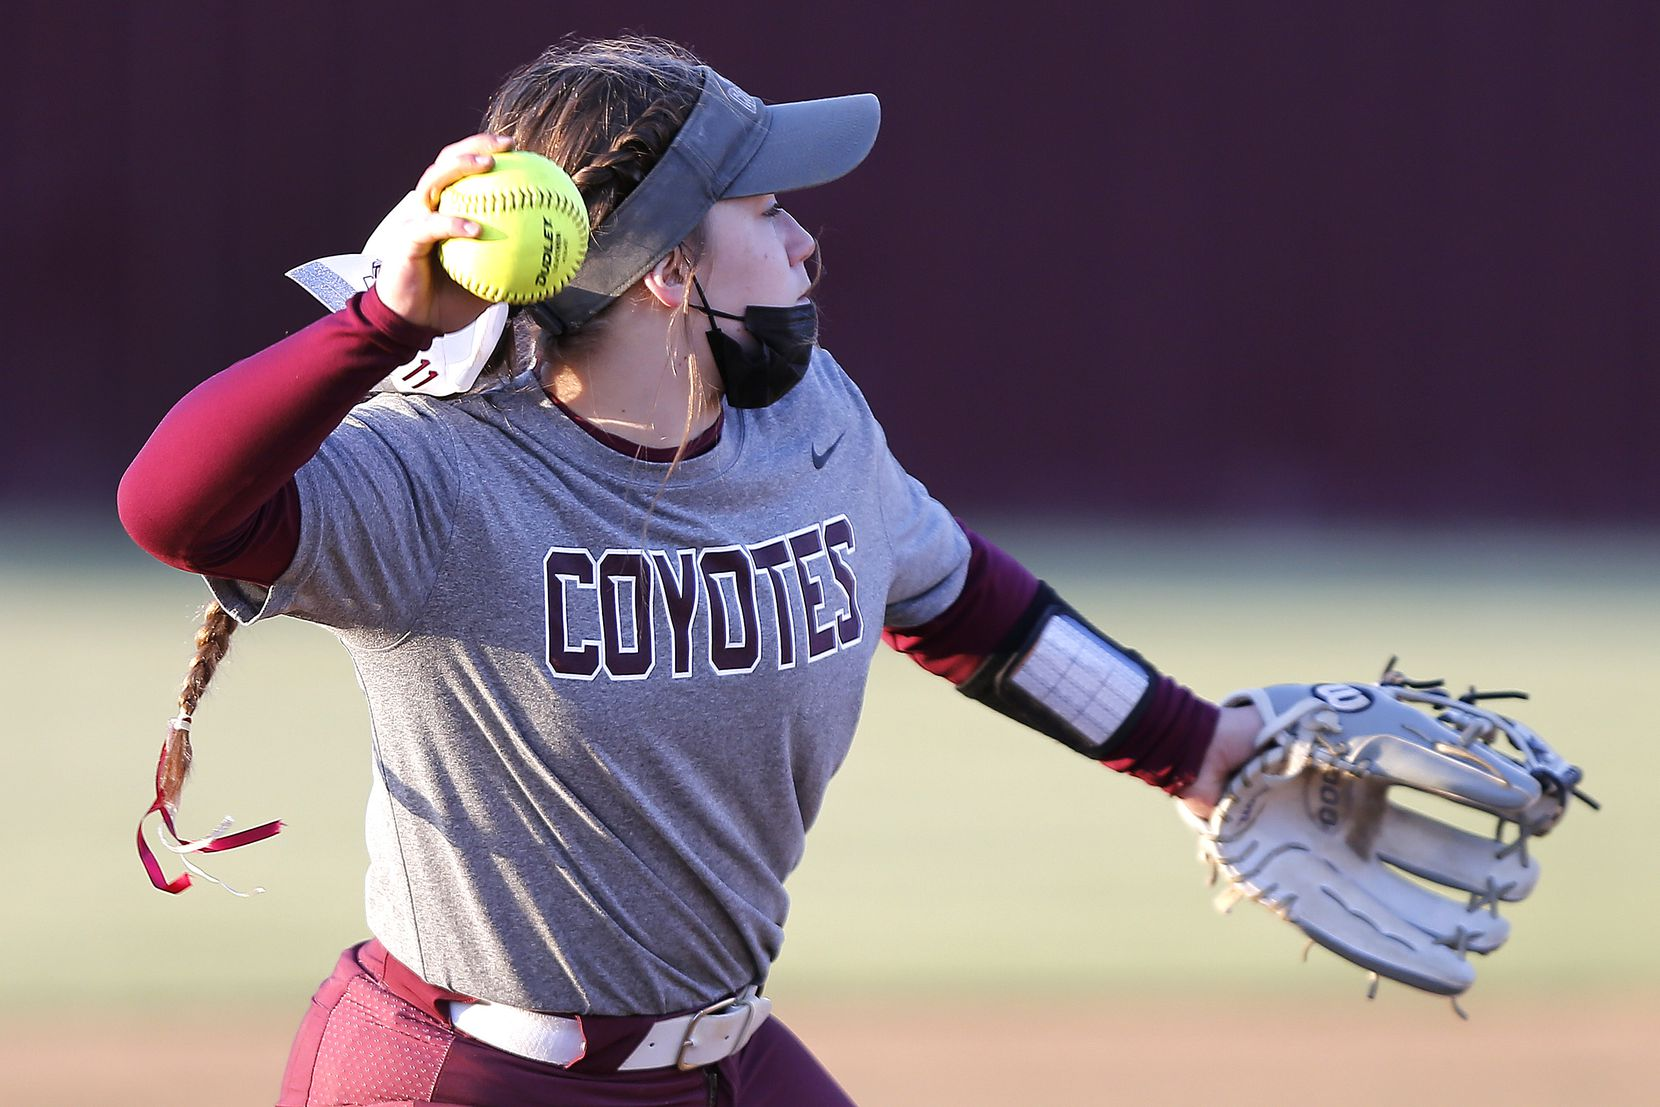 Heritage shortstop Elyse LeClair (1) makes the throw for an out in the first inning as Heritage High School hosted Memorial High School for the District 9-5A softball championship in Frisco on Tuesday, April 20, 2021. (Stewart F. House/Special Contributor)